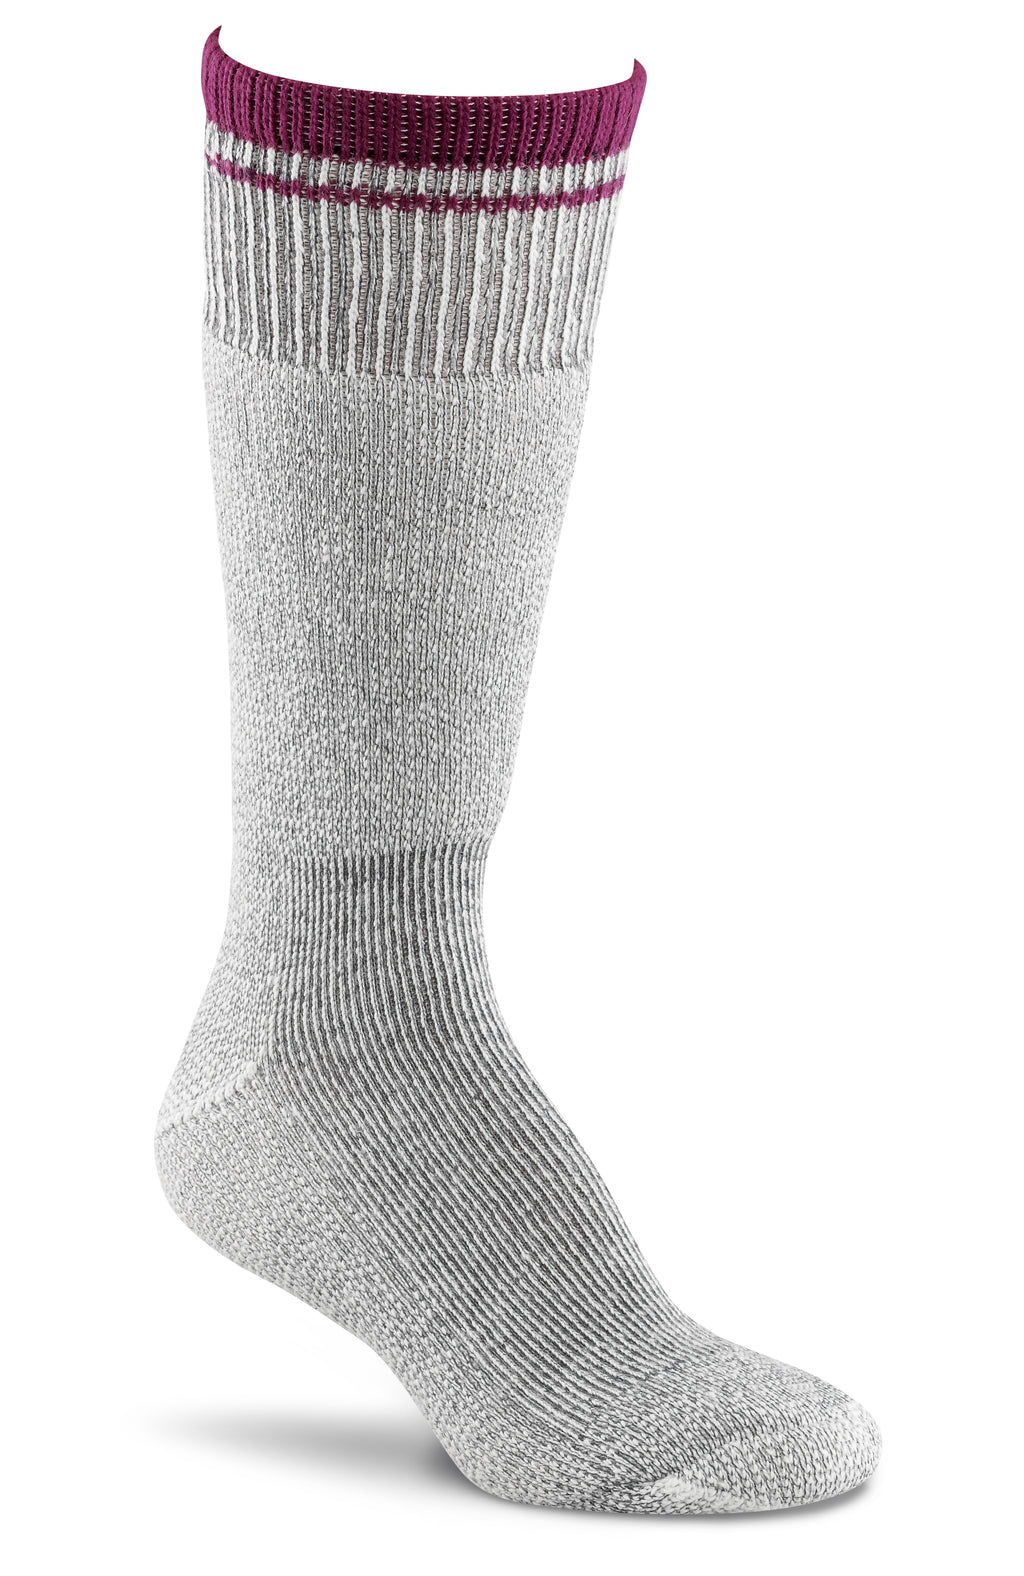 Fox River Her Field Women`s Cold Weather Medium weight Mid-calf Socks